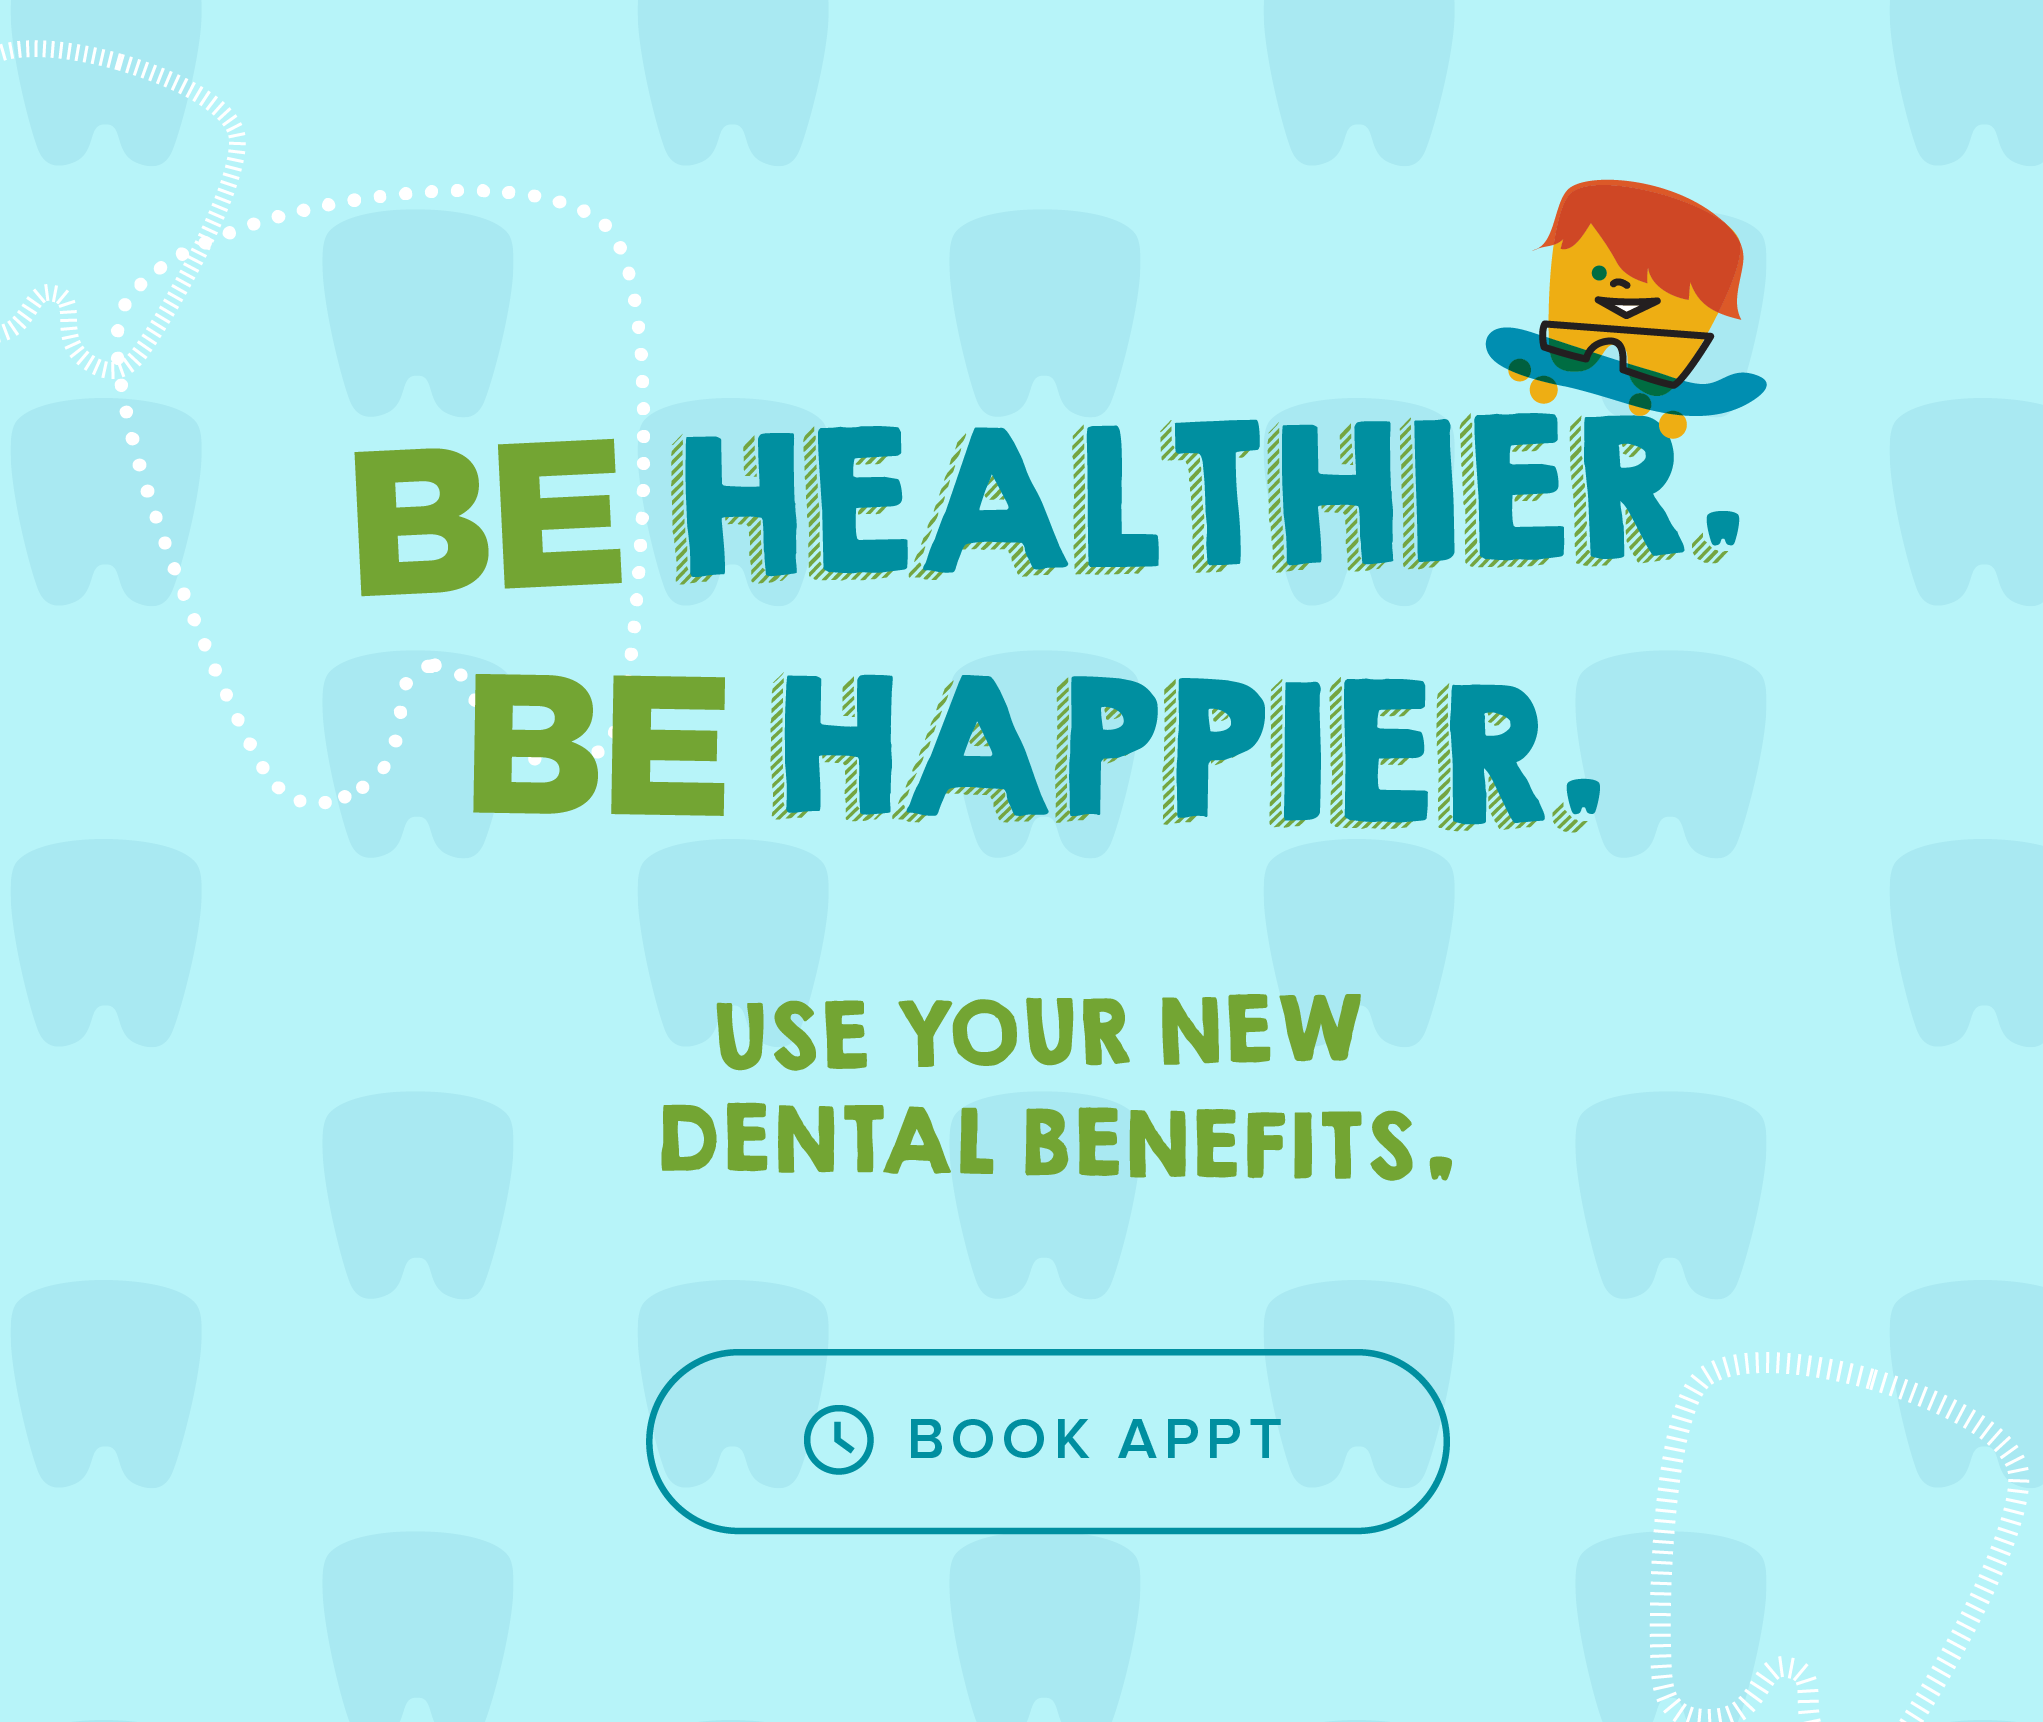 Be Healthier. Be Happier. Use your new dental benefits. - Goodyear Kids' Dentistry & Orthodontics